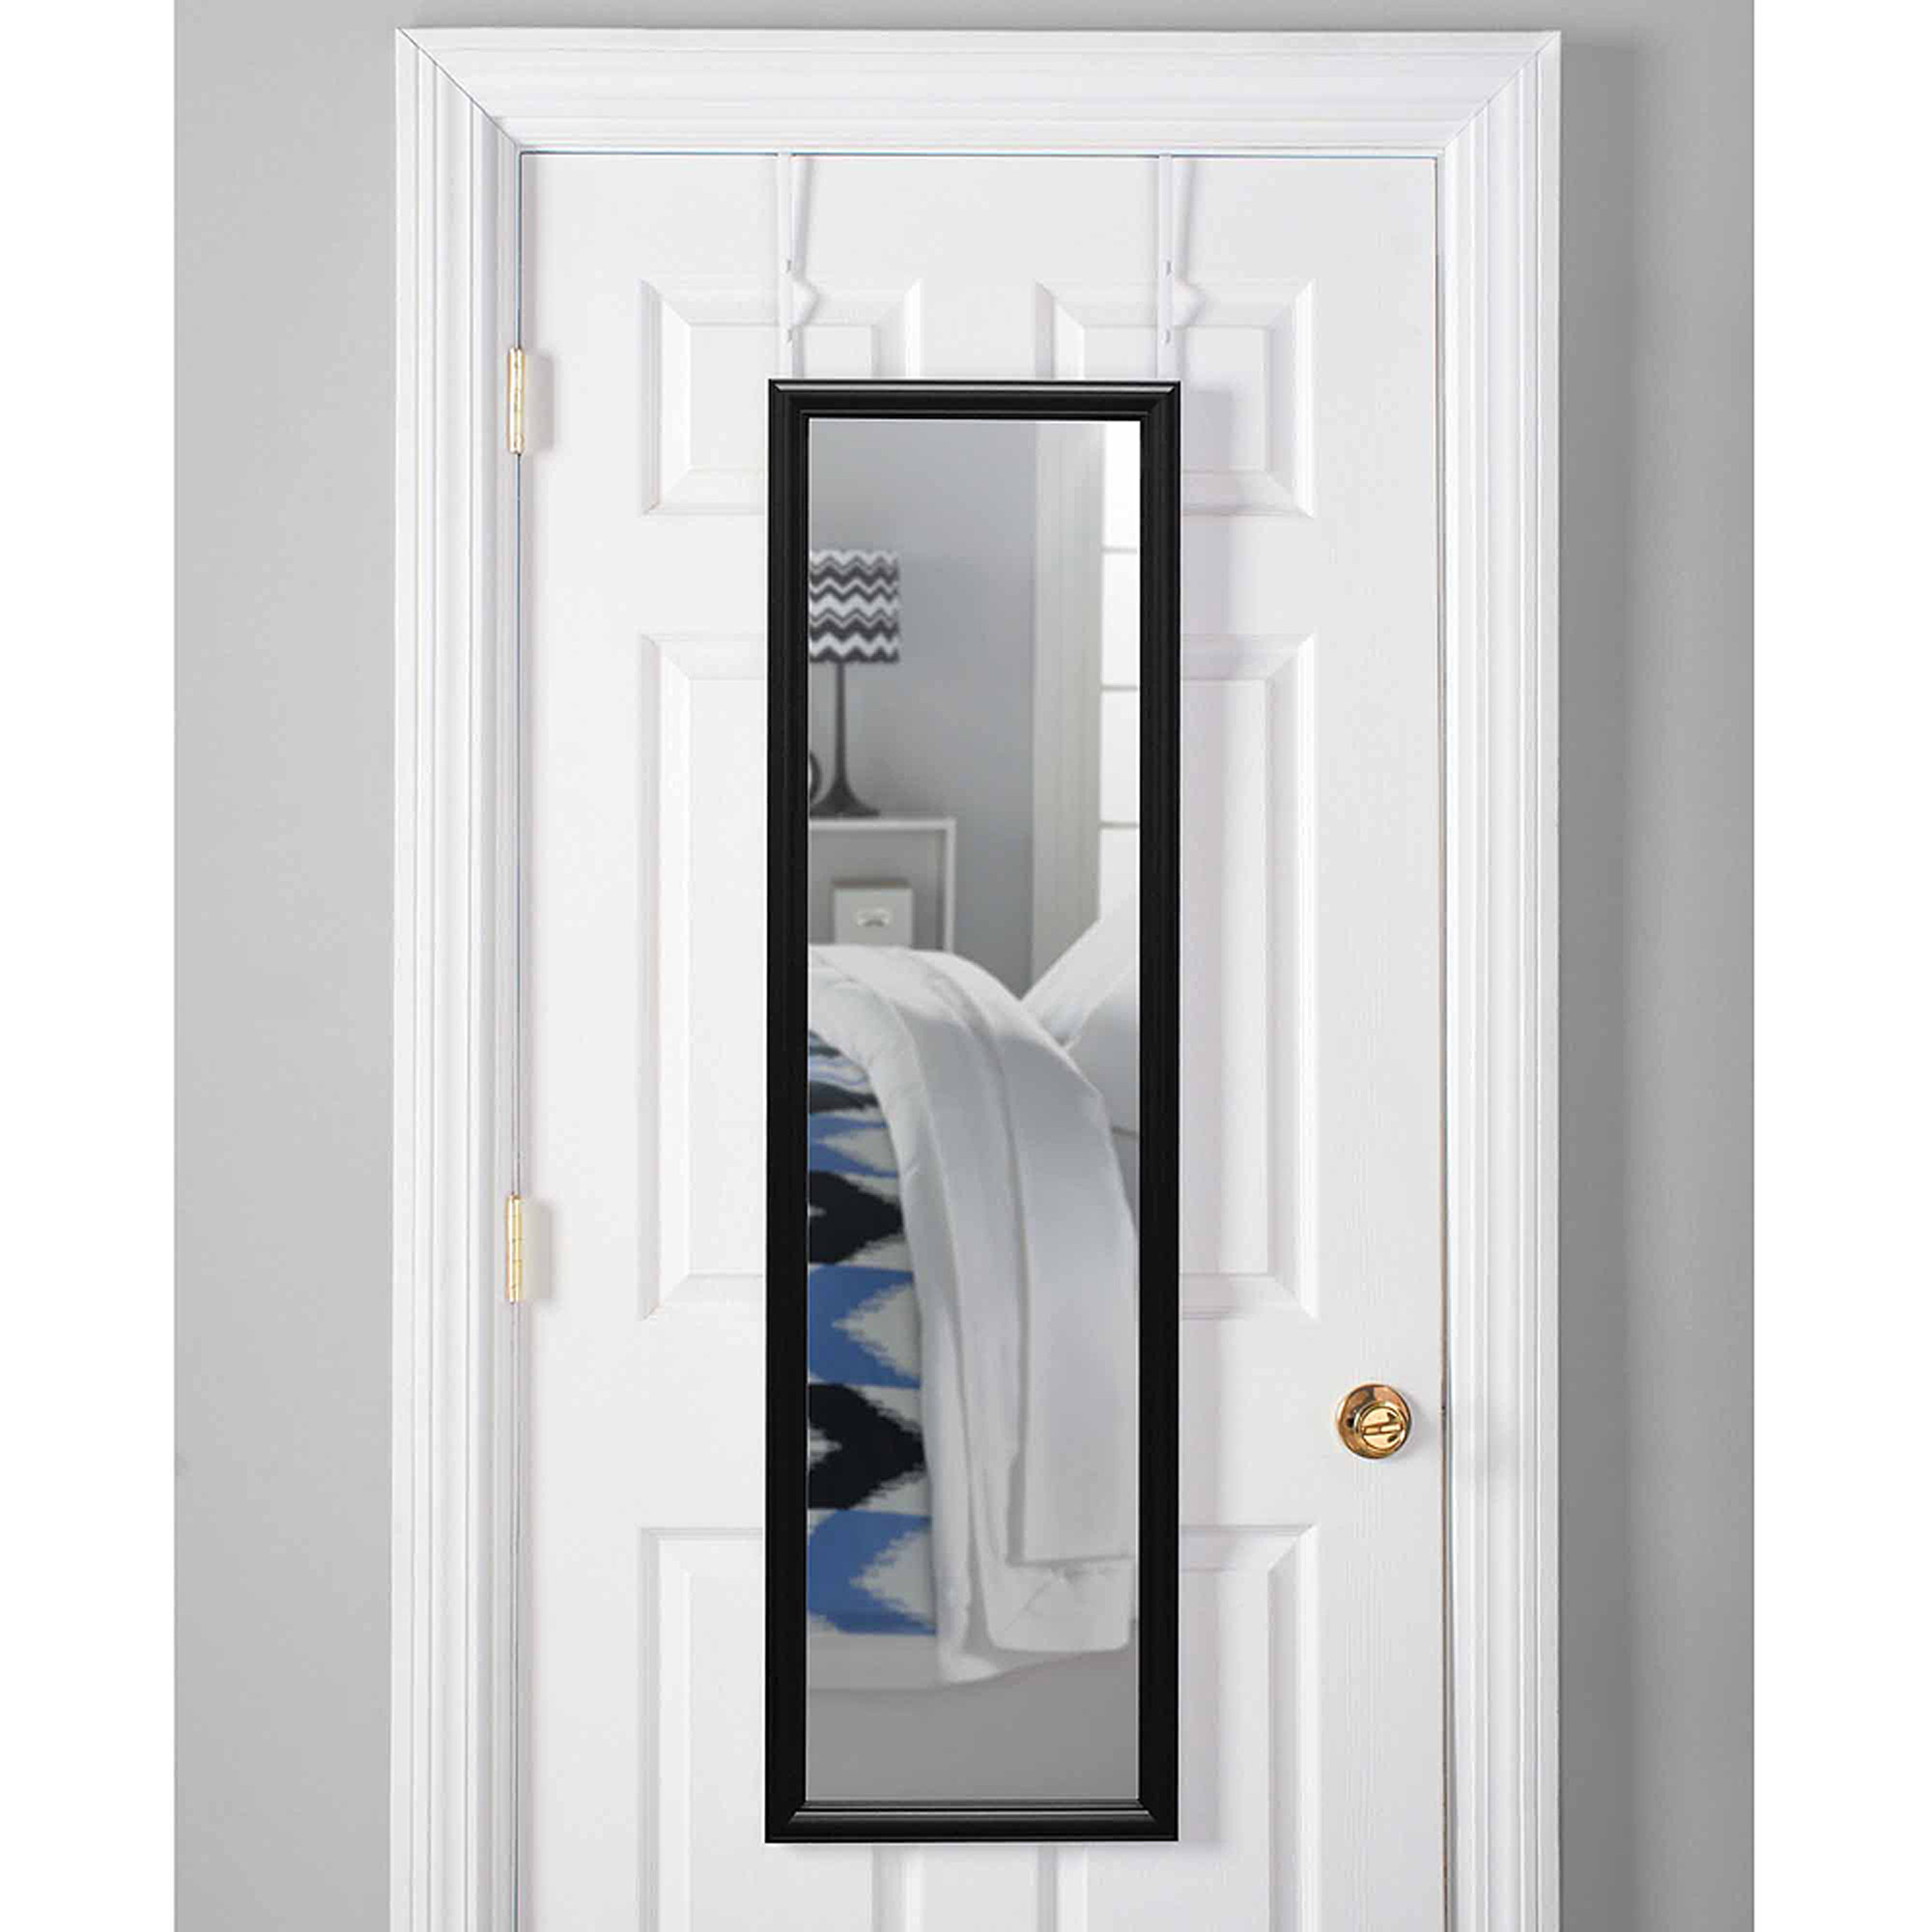 Over The Door Mirror Walmart.Mainstays 15 X 51 Over The Door Mirror White